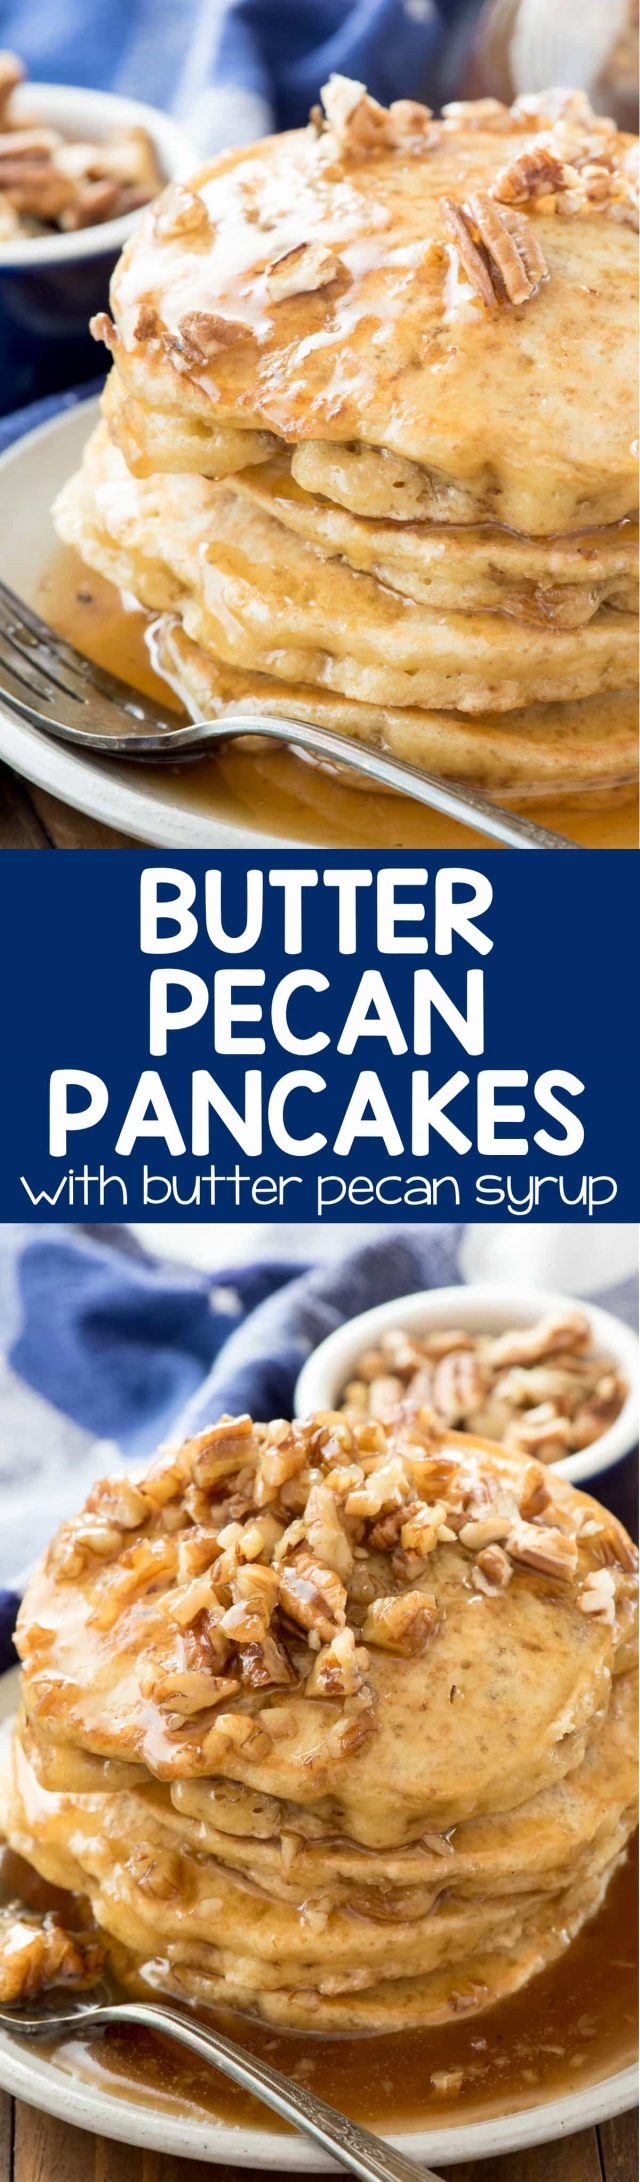 Butter Pecan Pancakes - Crazy for Crust